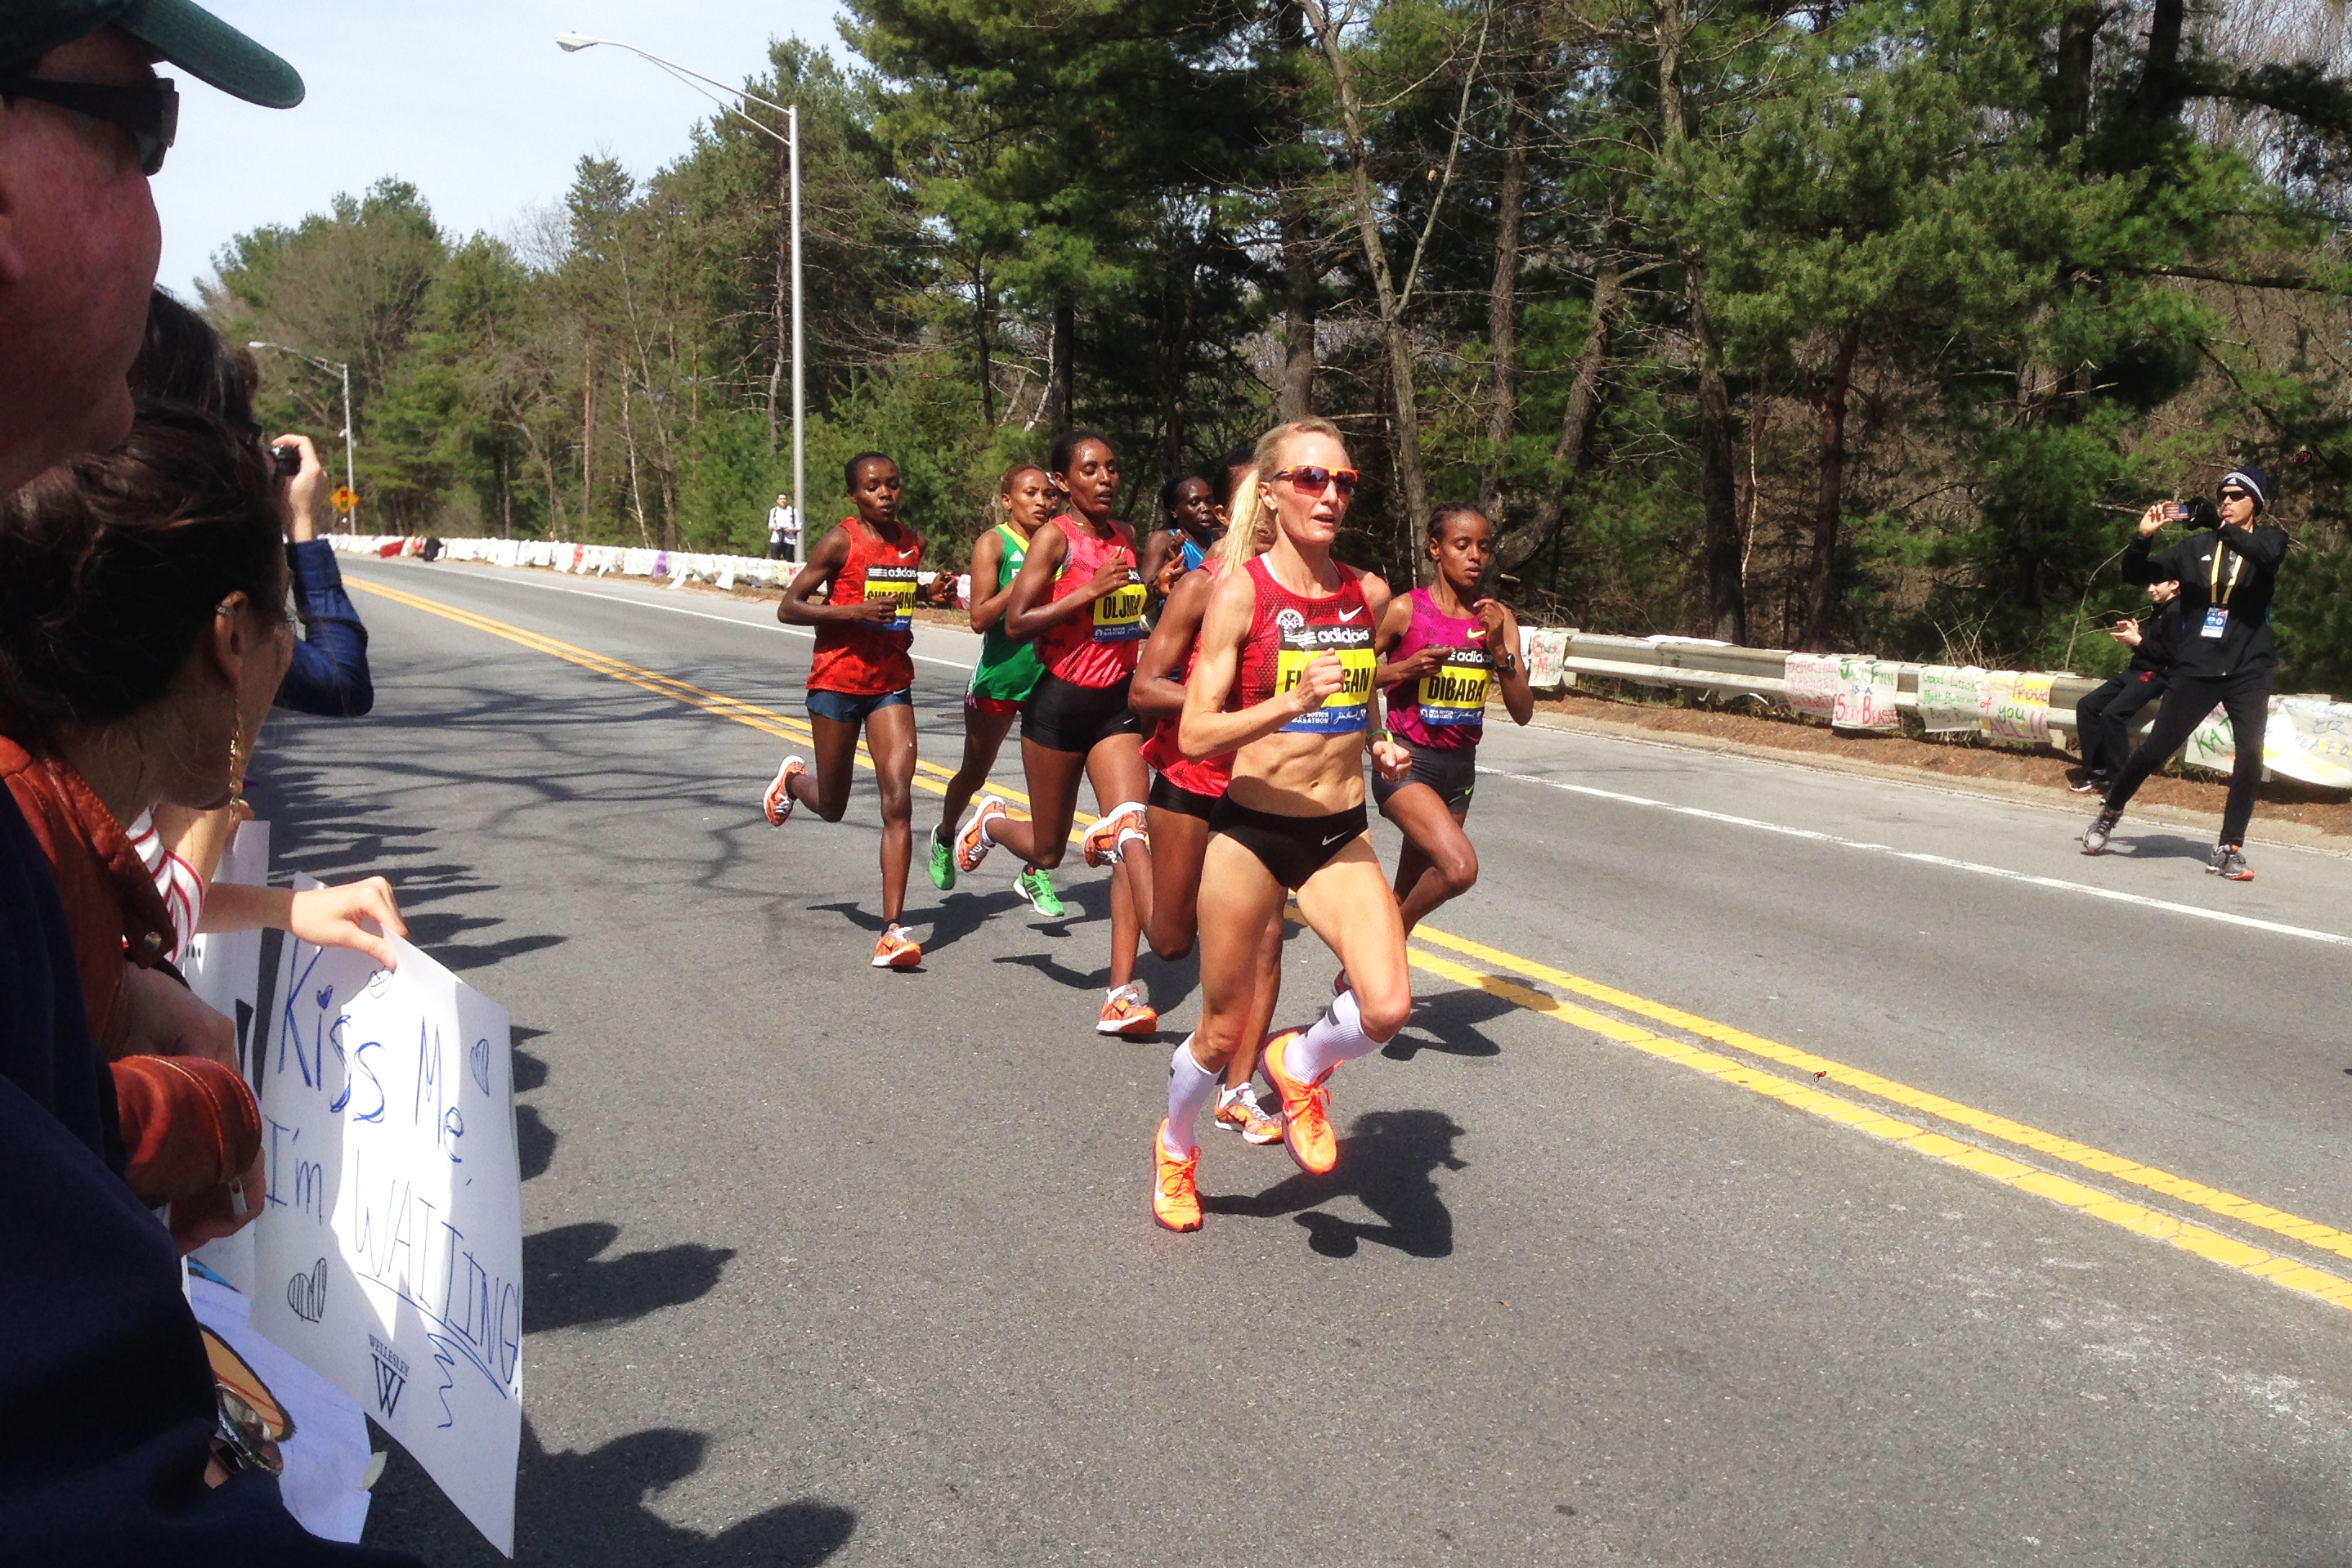 American Shalane Flanagan leads pack of elite women runners past Wellesley College, just before the 13 mile mark.